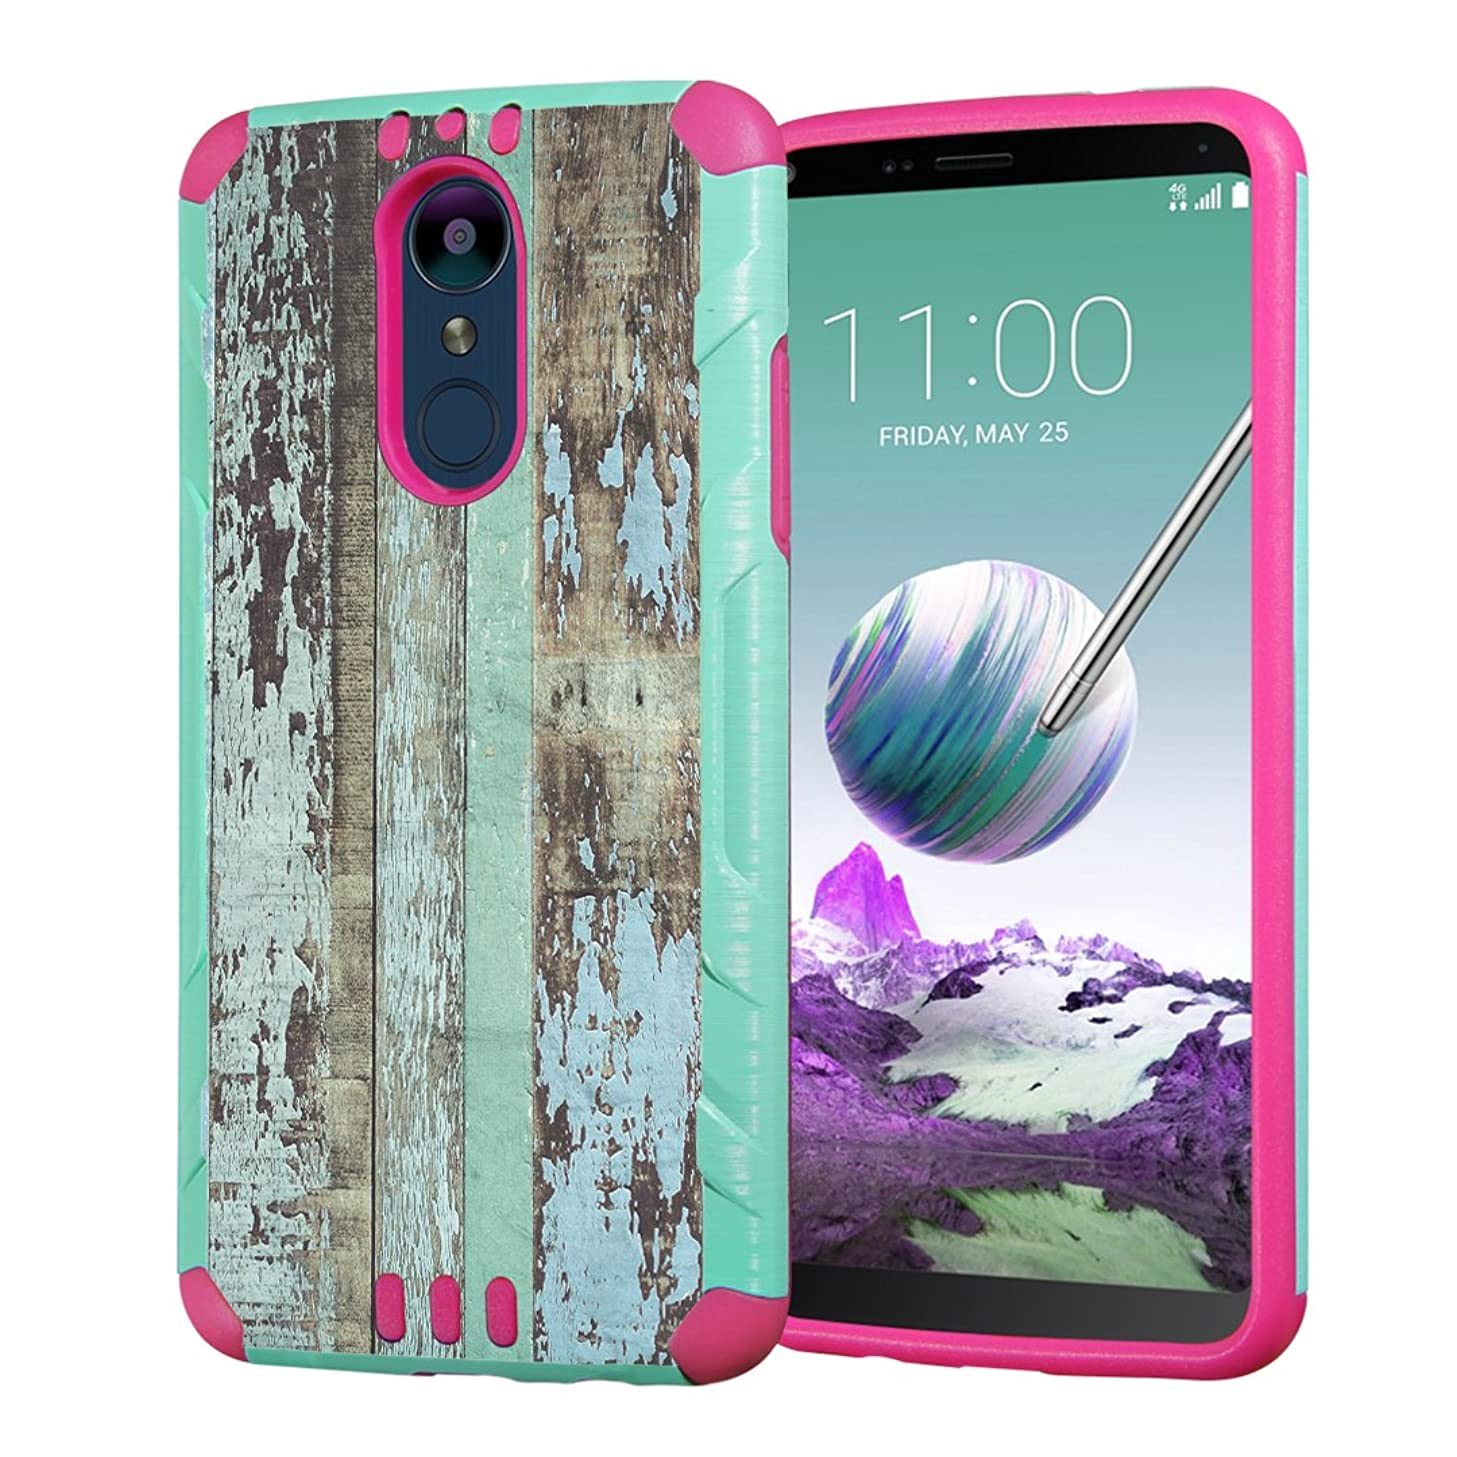 Moriko Case Compatible with LG Stylo 4 Plus, LG Stylo 4, LG Q Stylus [Heavy Duty Armor Drop Protection Dual Layer Shockproof Case Mint Pink] for LG Stylo 4 - (Vintage Wood Print)